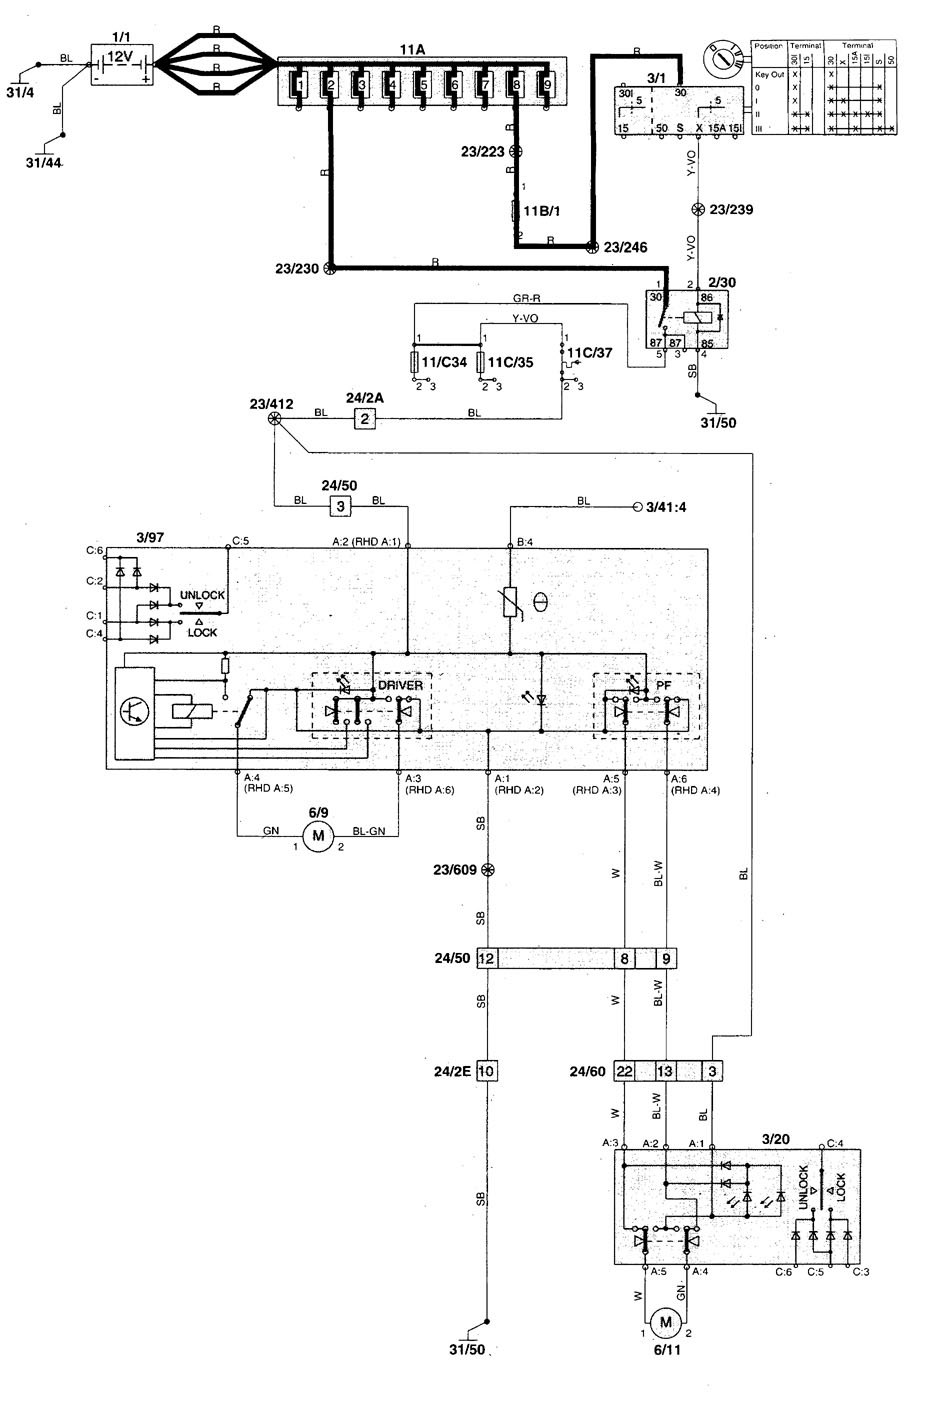 medium resolution of wiring diagram for 2004 volvo c70 wiring diagram tutorial volvo c70 radio wiring diagram volvo c70 wiring diagram